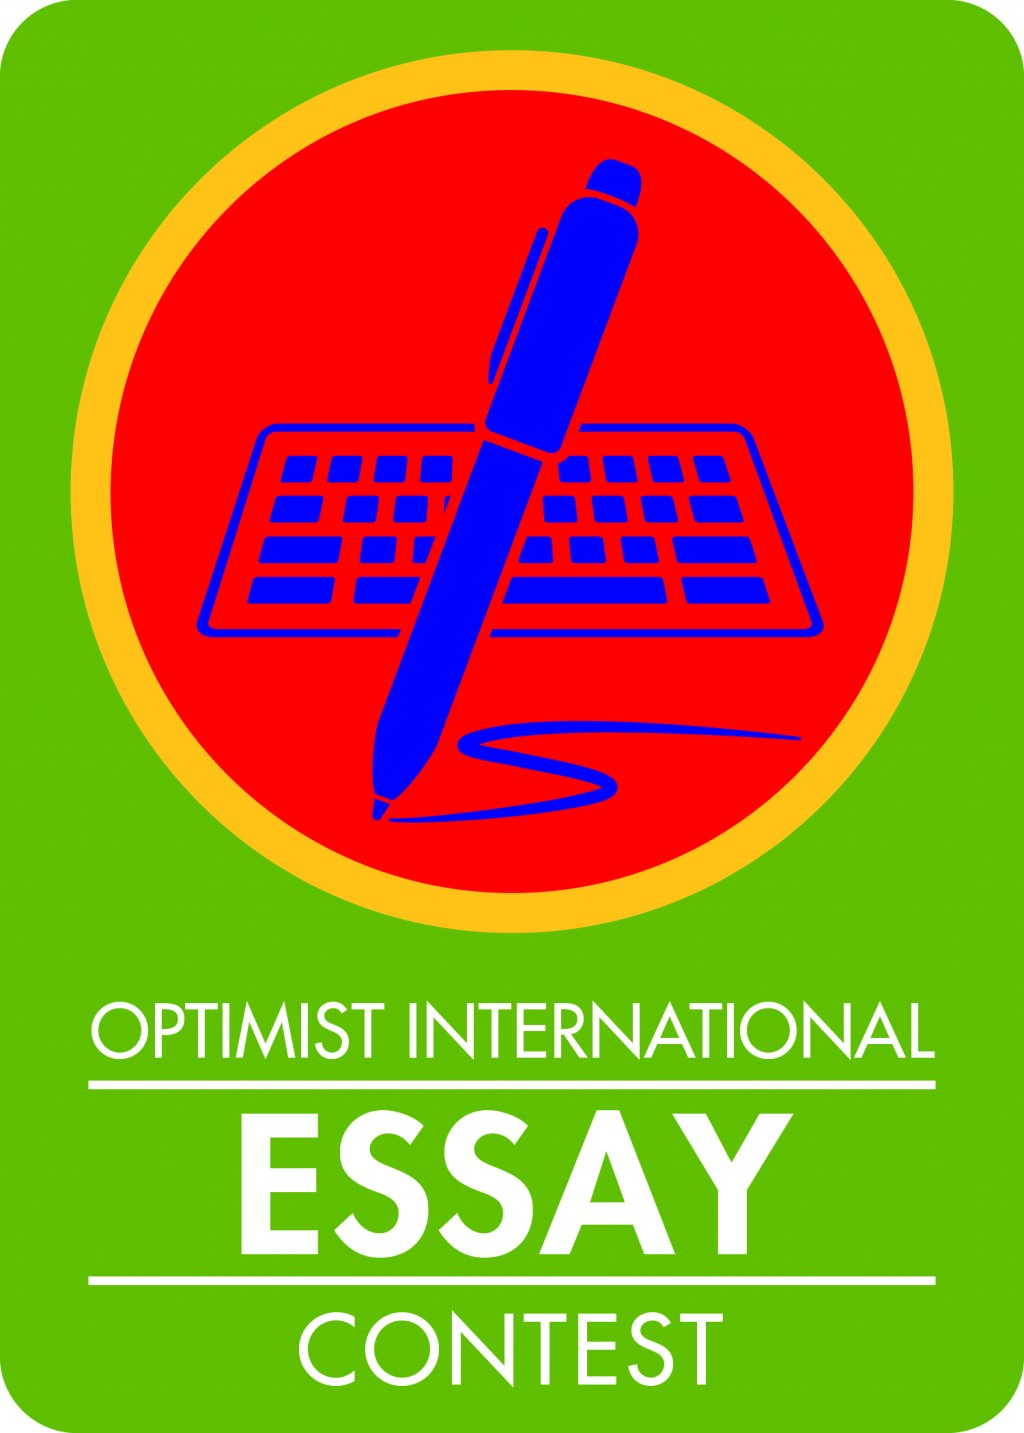 021 Essay High Res School Contests Fascinating Contest Winners 2019 For Scholarships Large